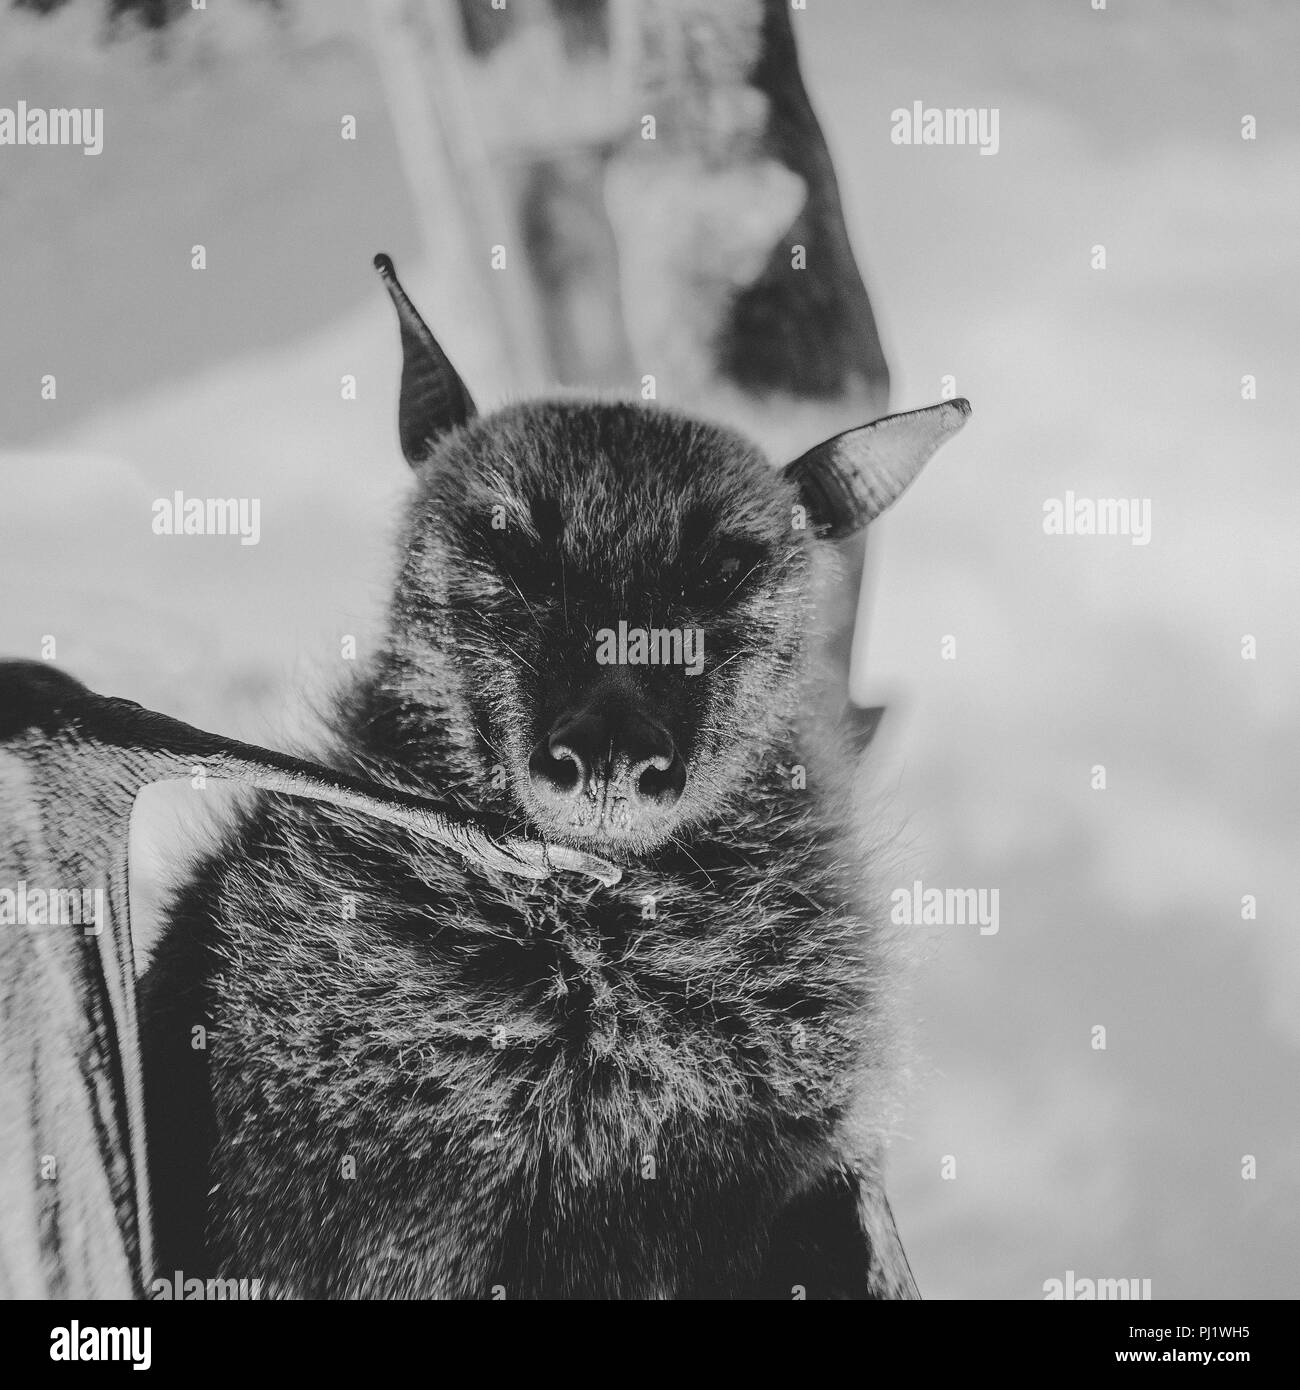 Black And White Portrait Of A Giant Fruit Bat/Flying Fox Hanging; Black and white series of portraits of a fruit bat or flying fox Stock Photo